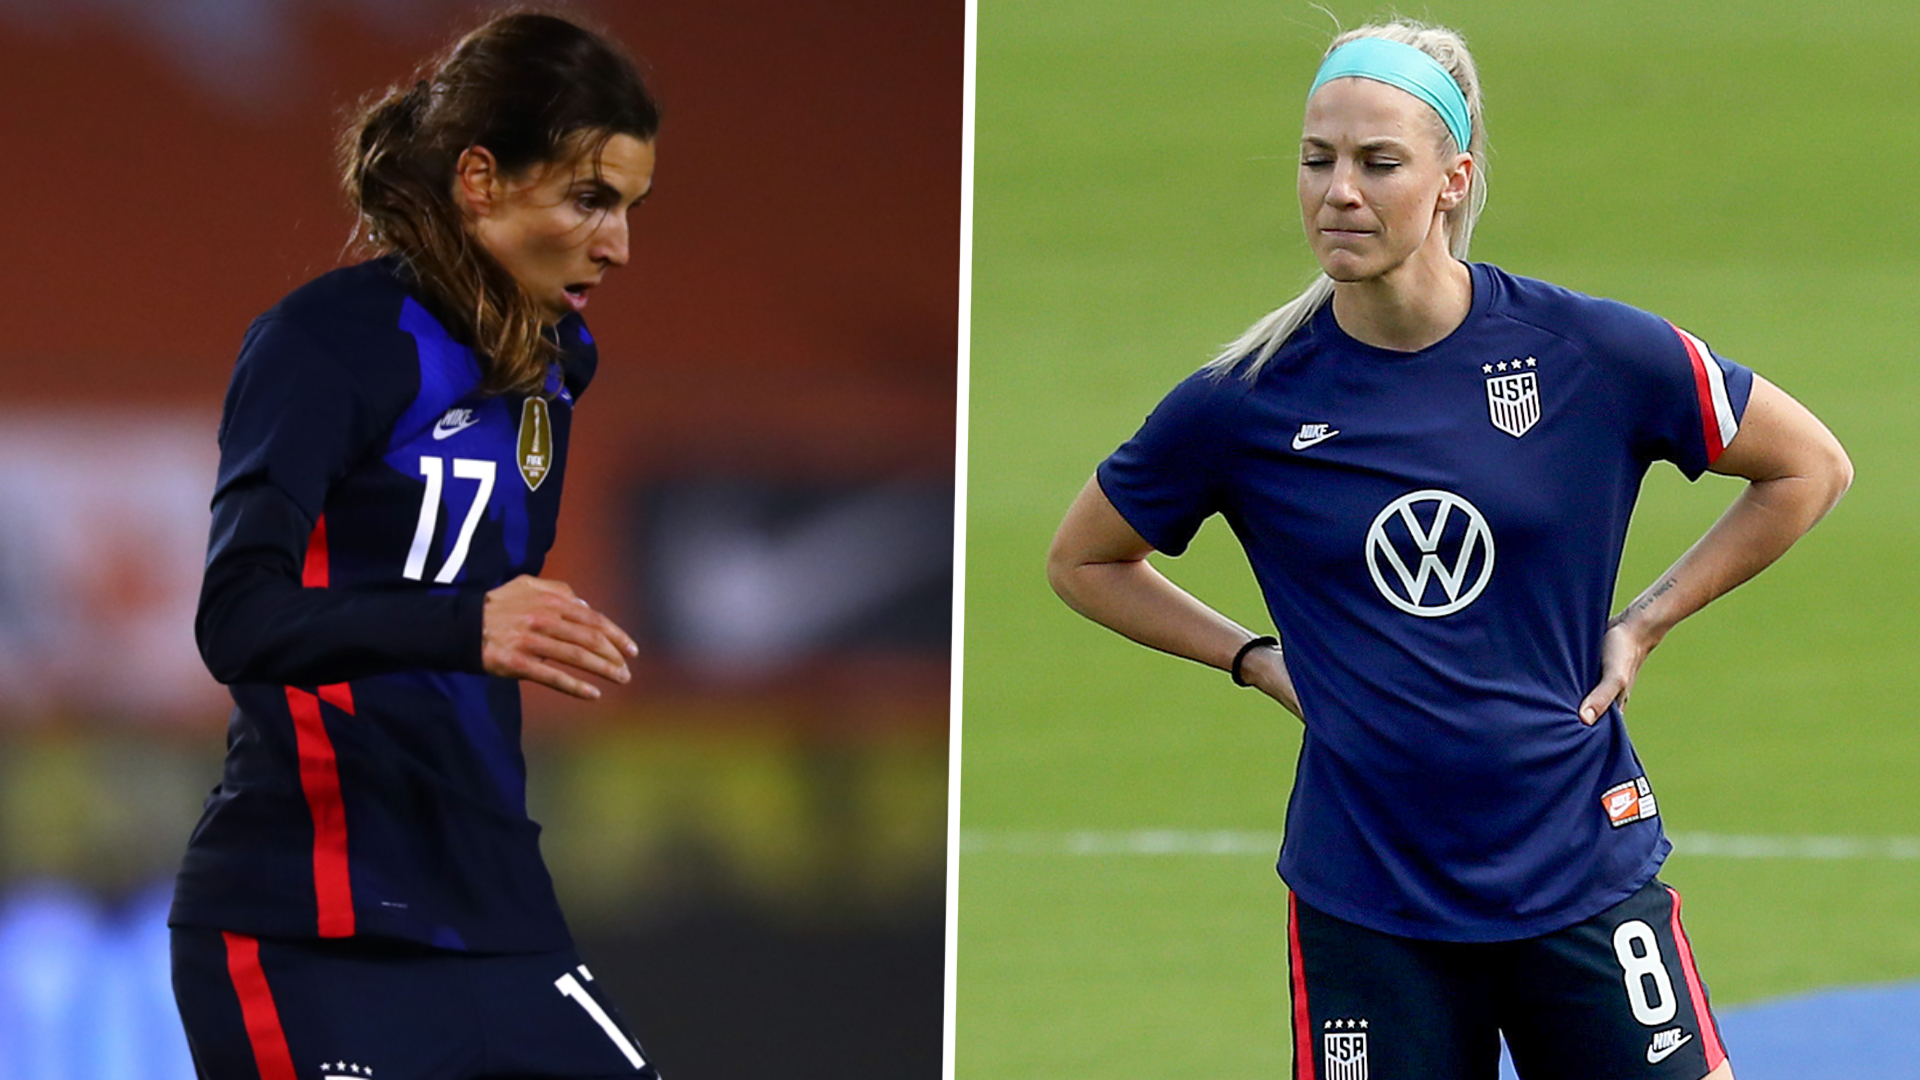 USWNT stars Heath and Ertz 'on schedule' to play in Olympics, says Andonovski